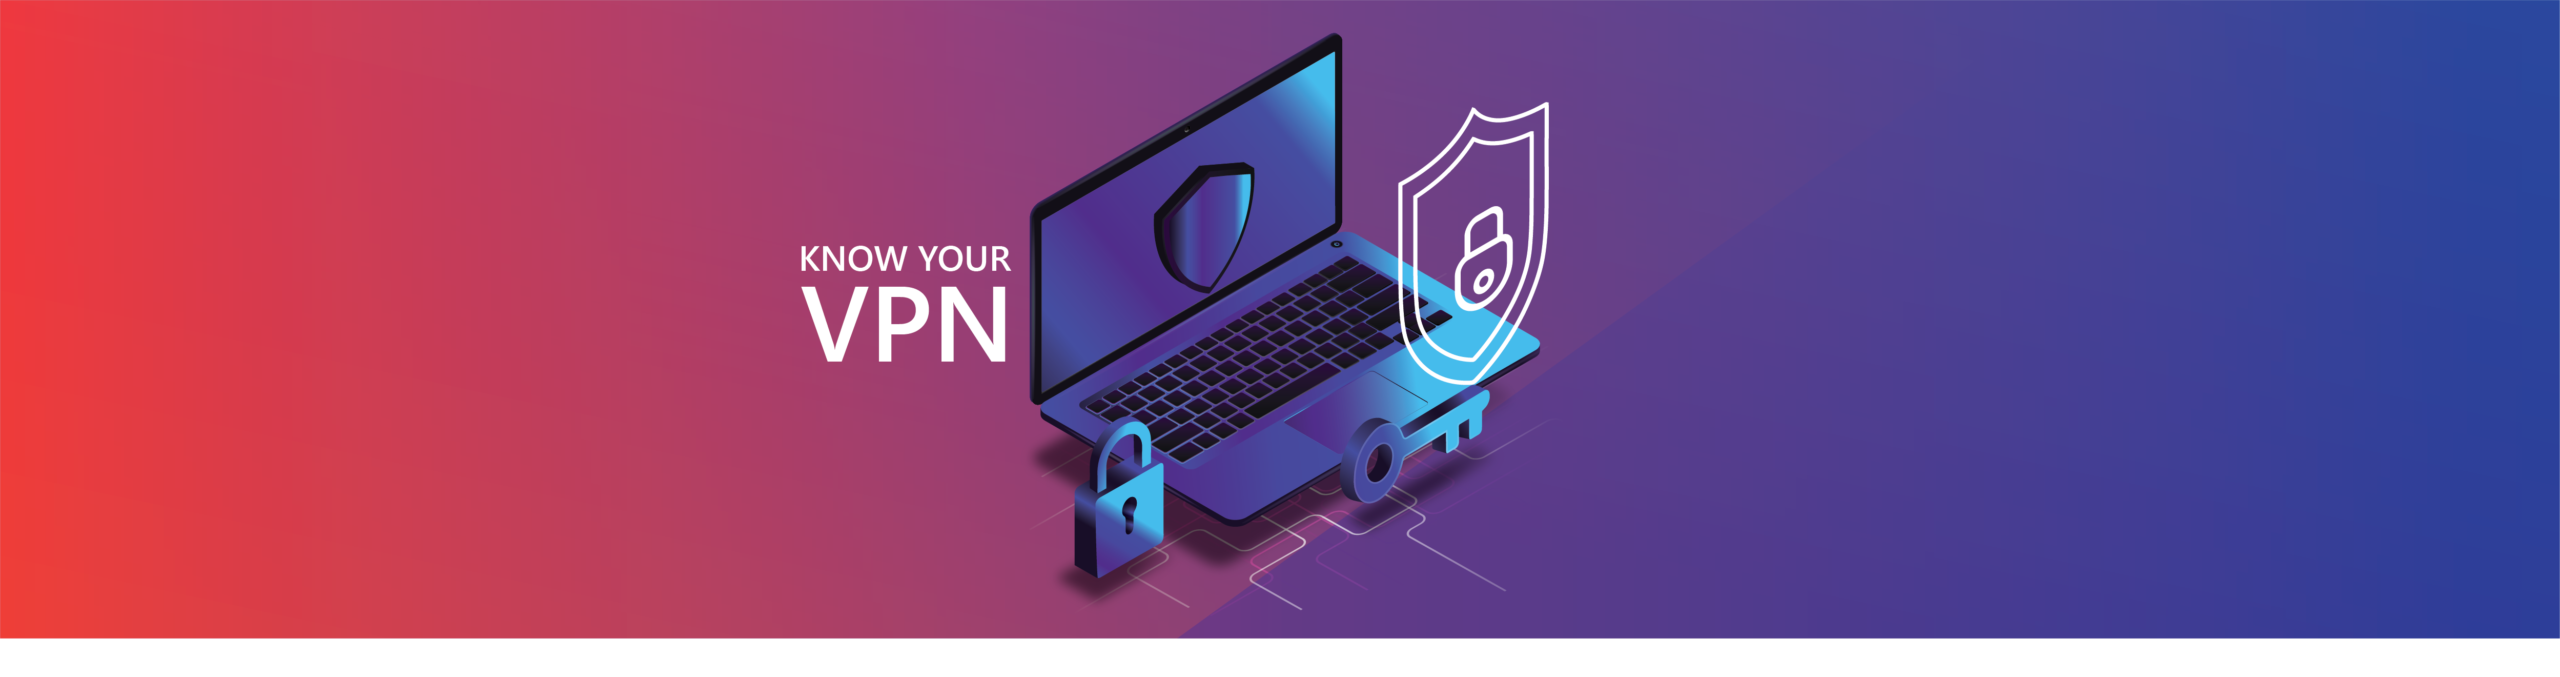 Get to know your VPN